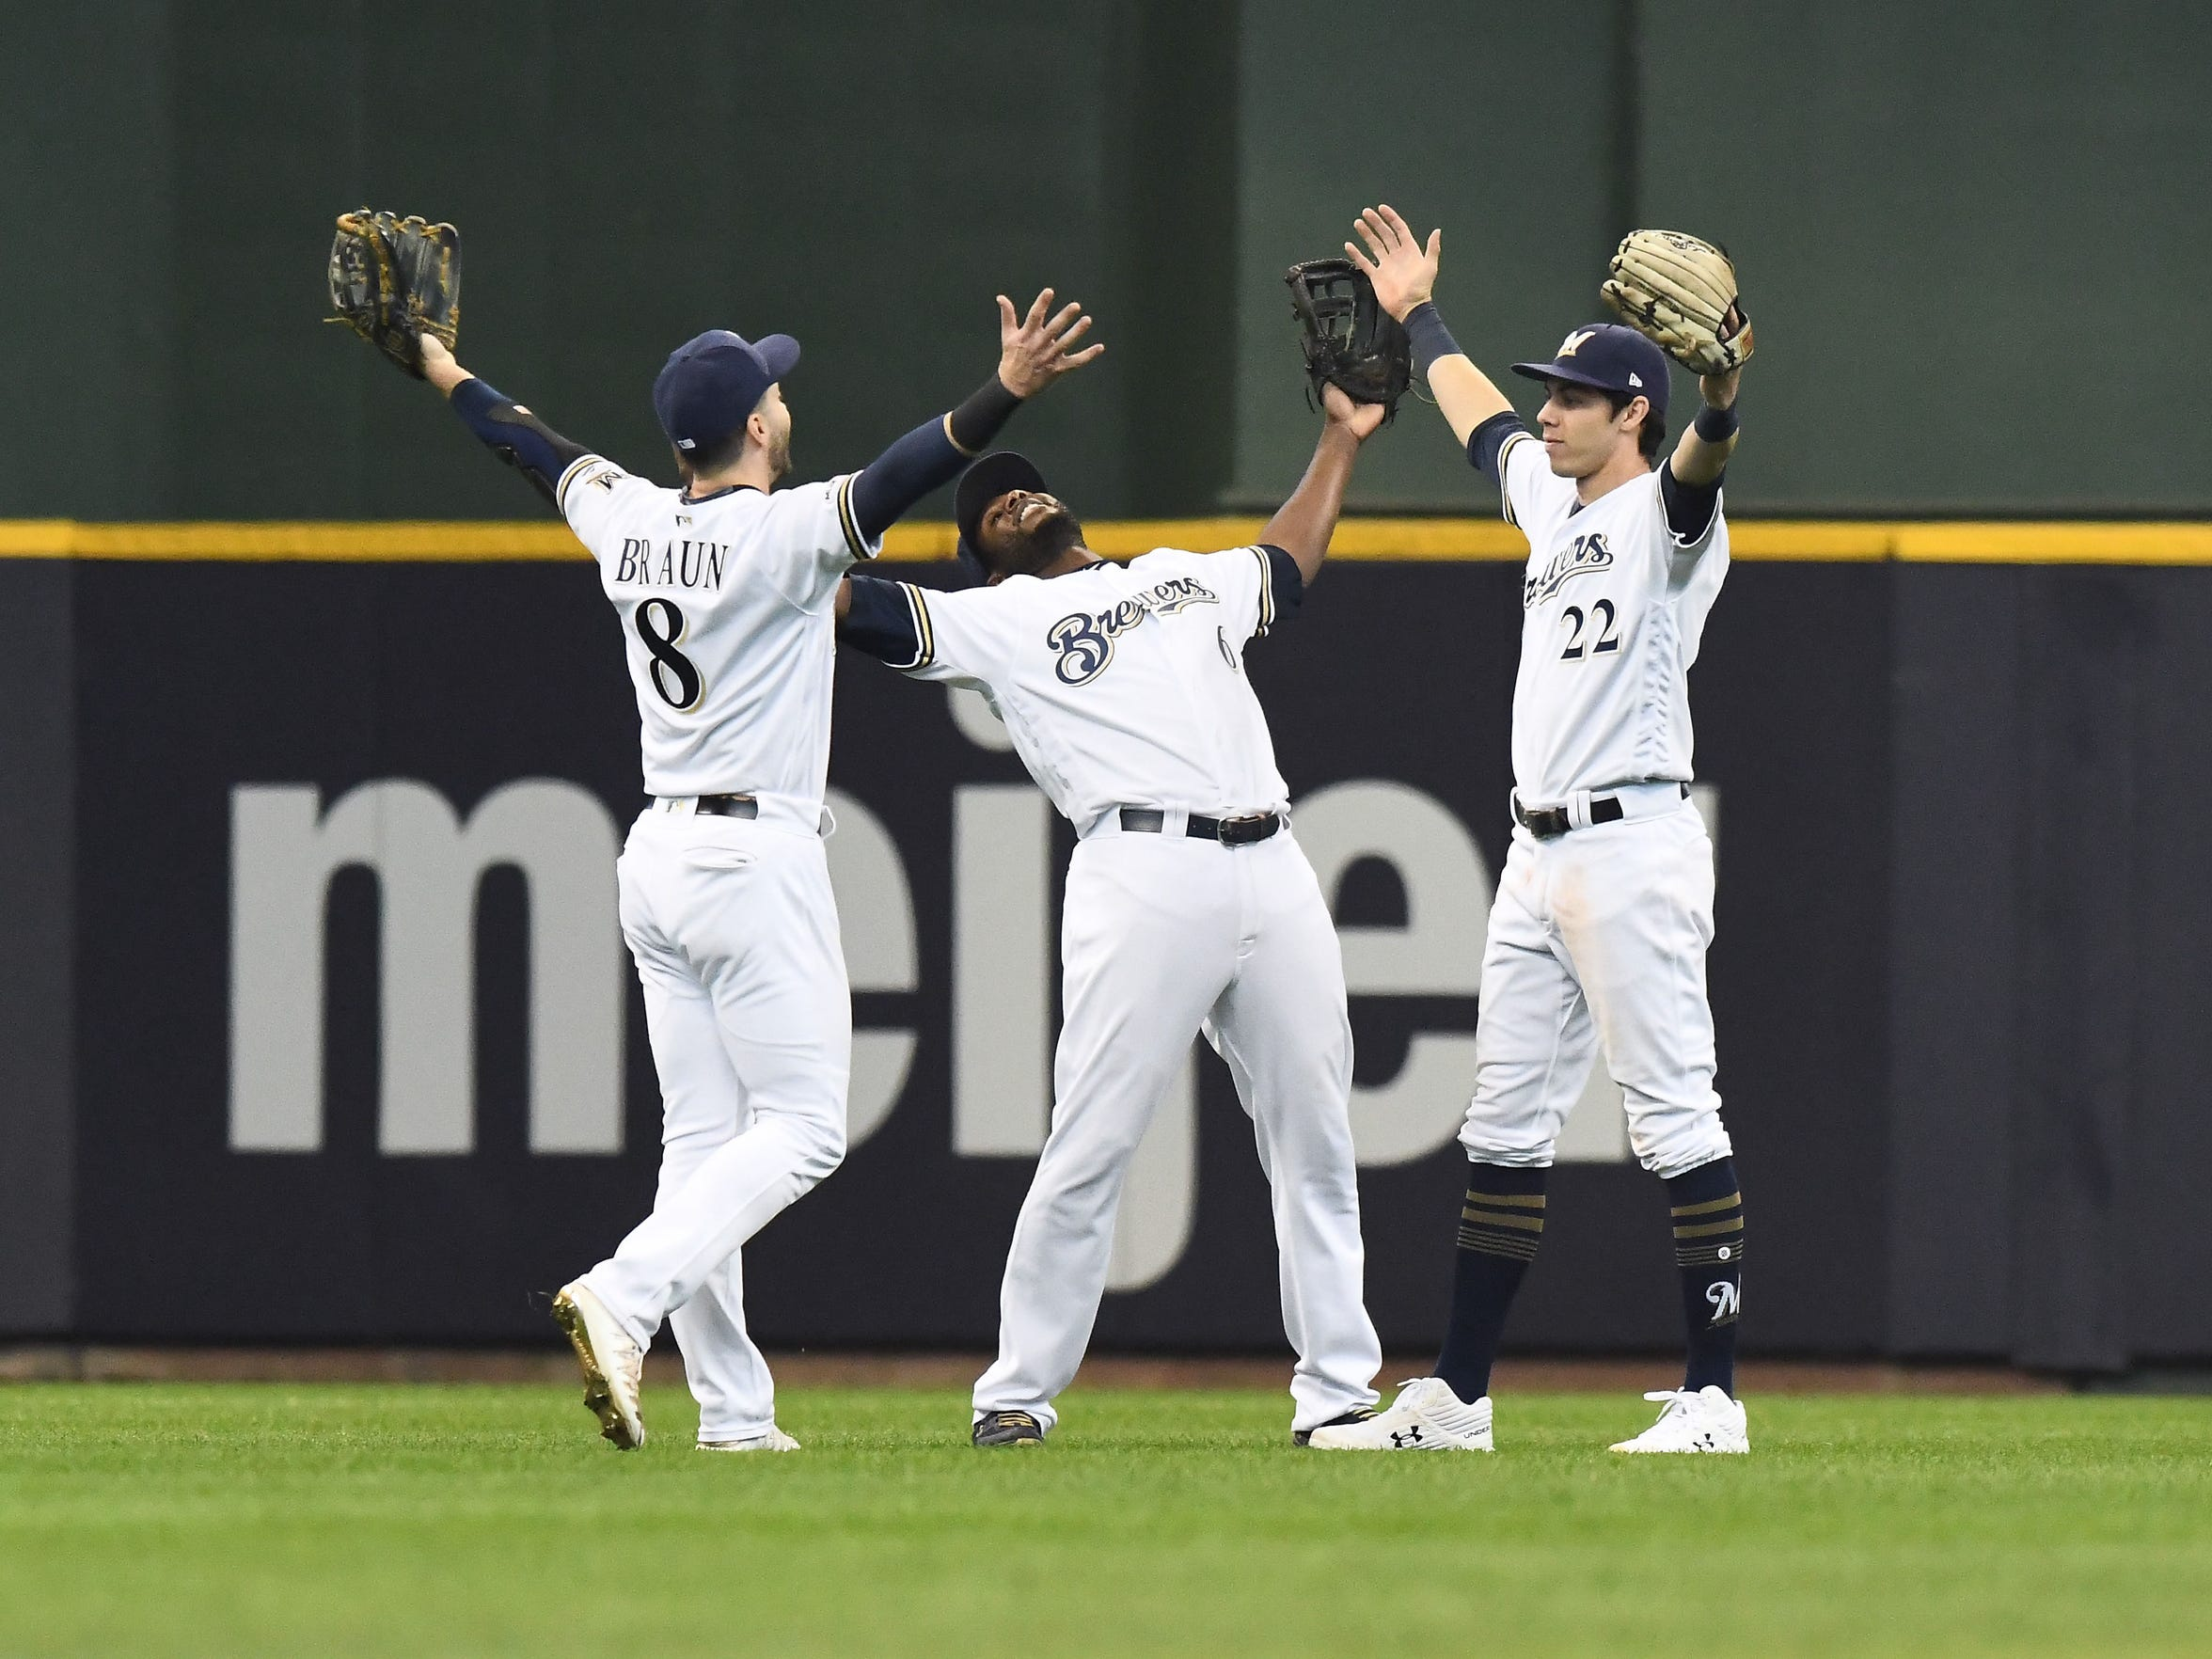 The recent run of success for the Milwaukee Brewers have helped make Miller Park a must-visit during the summer months.